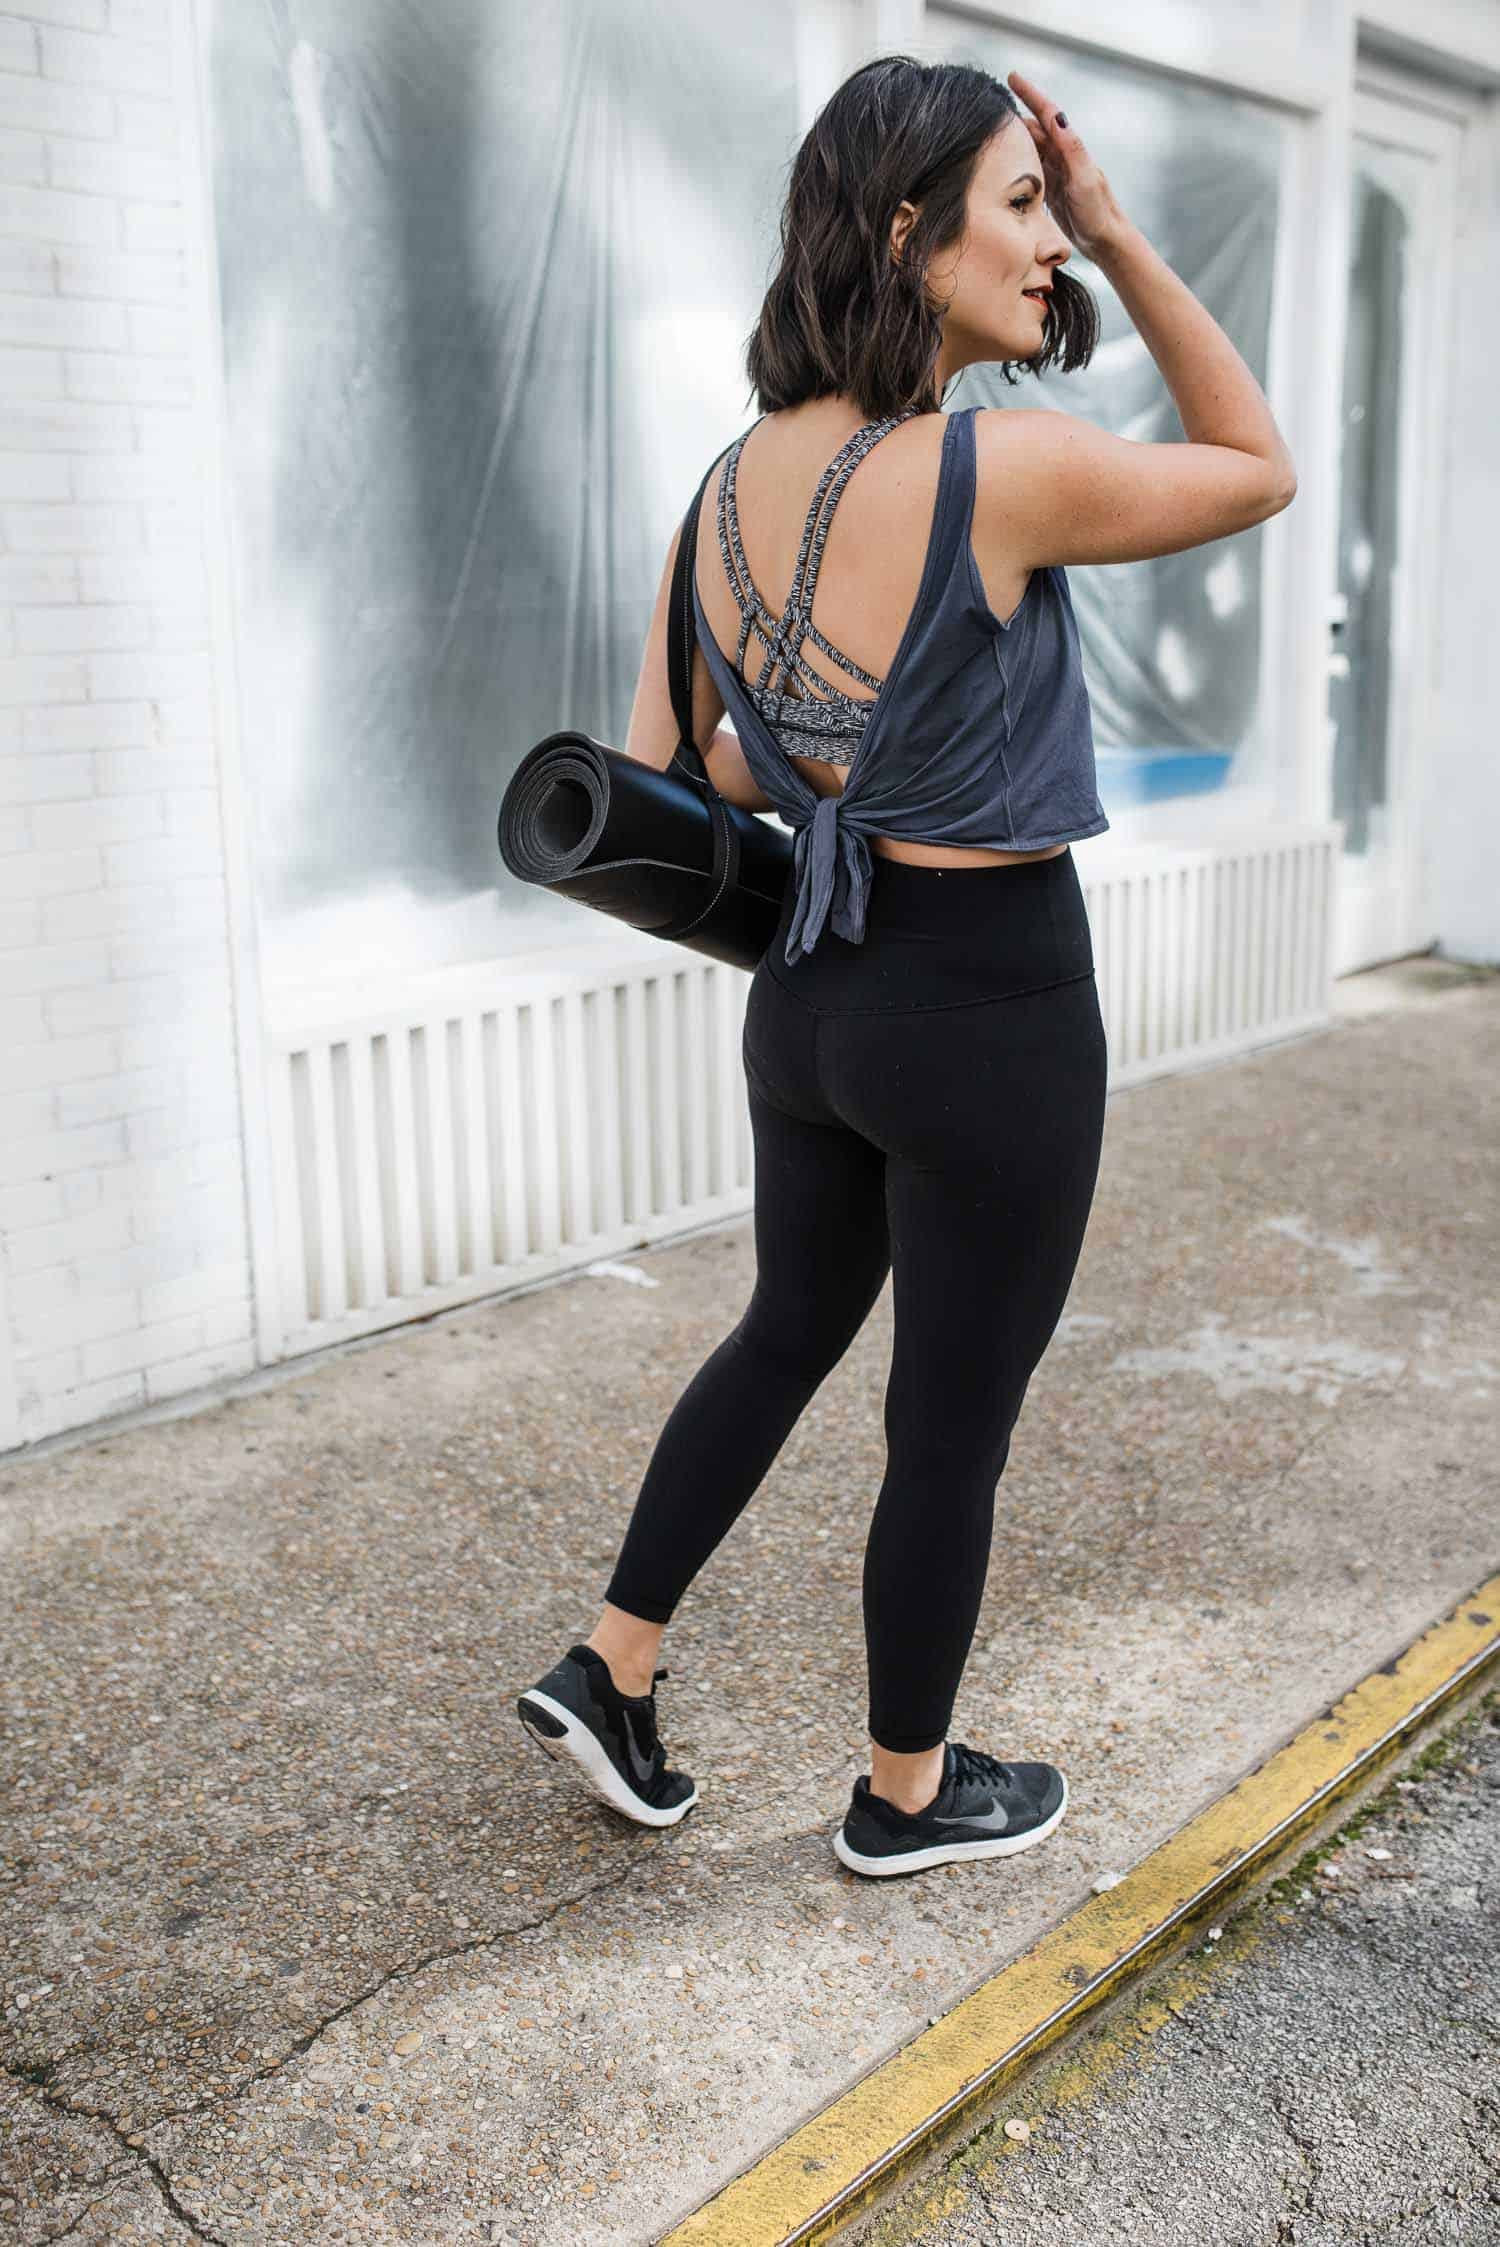 What To Wear To Hot Yoga